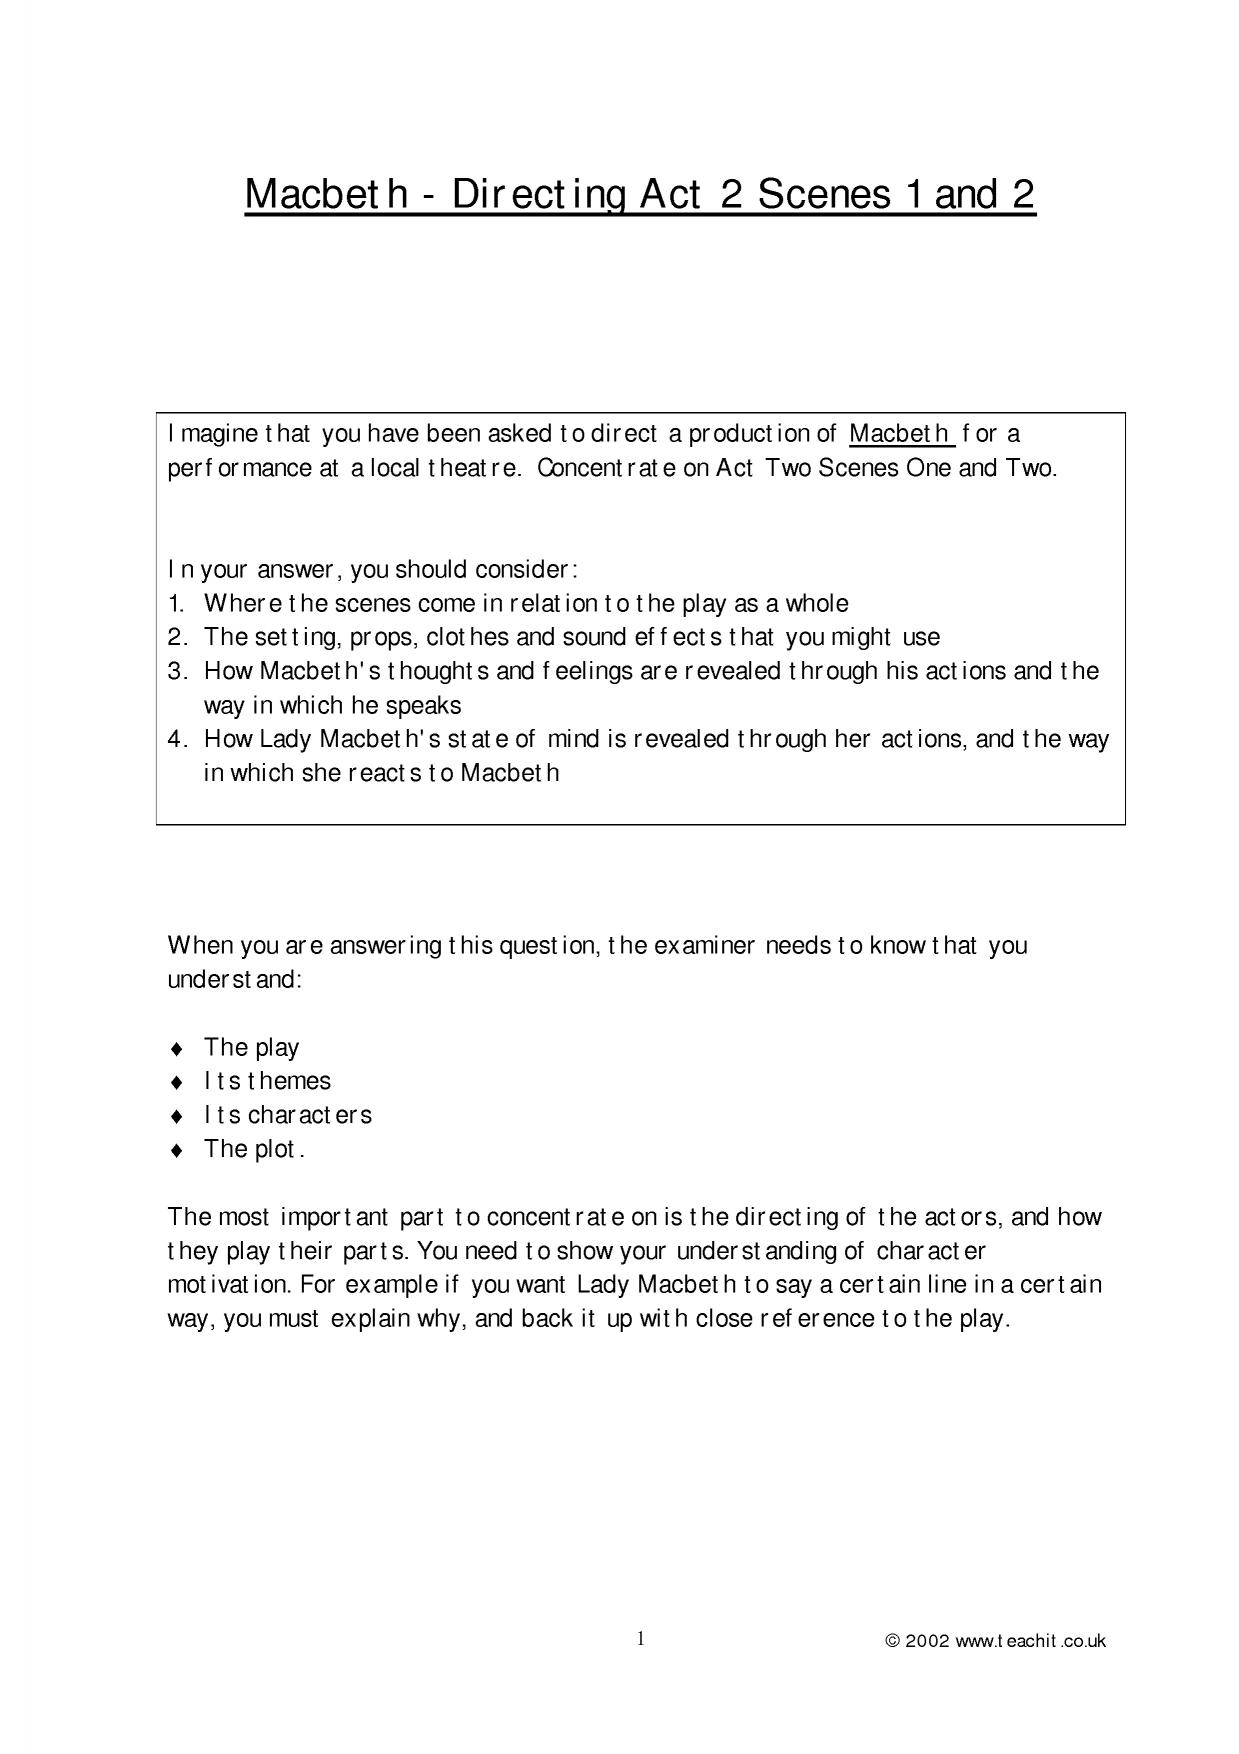 essay questions for macbeth   ivoiregion exam essay questions macbeth